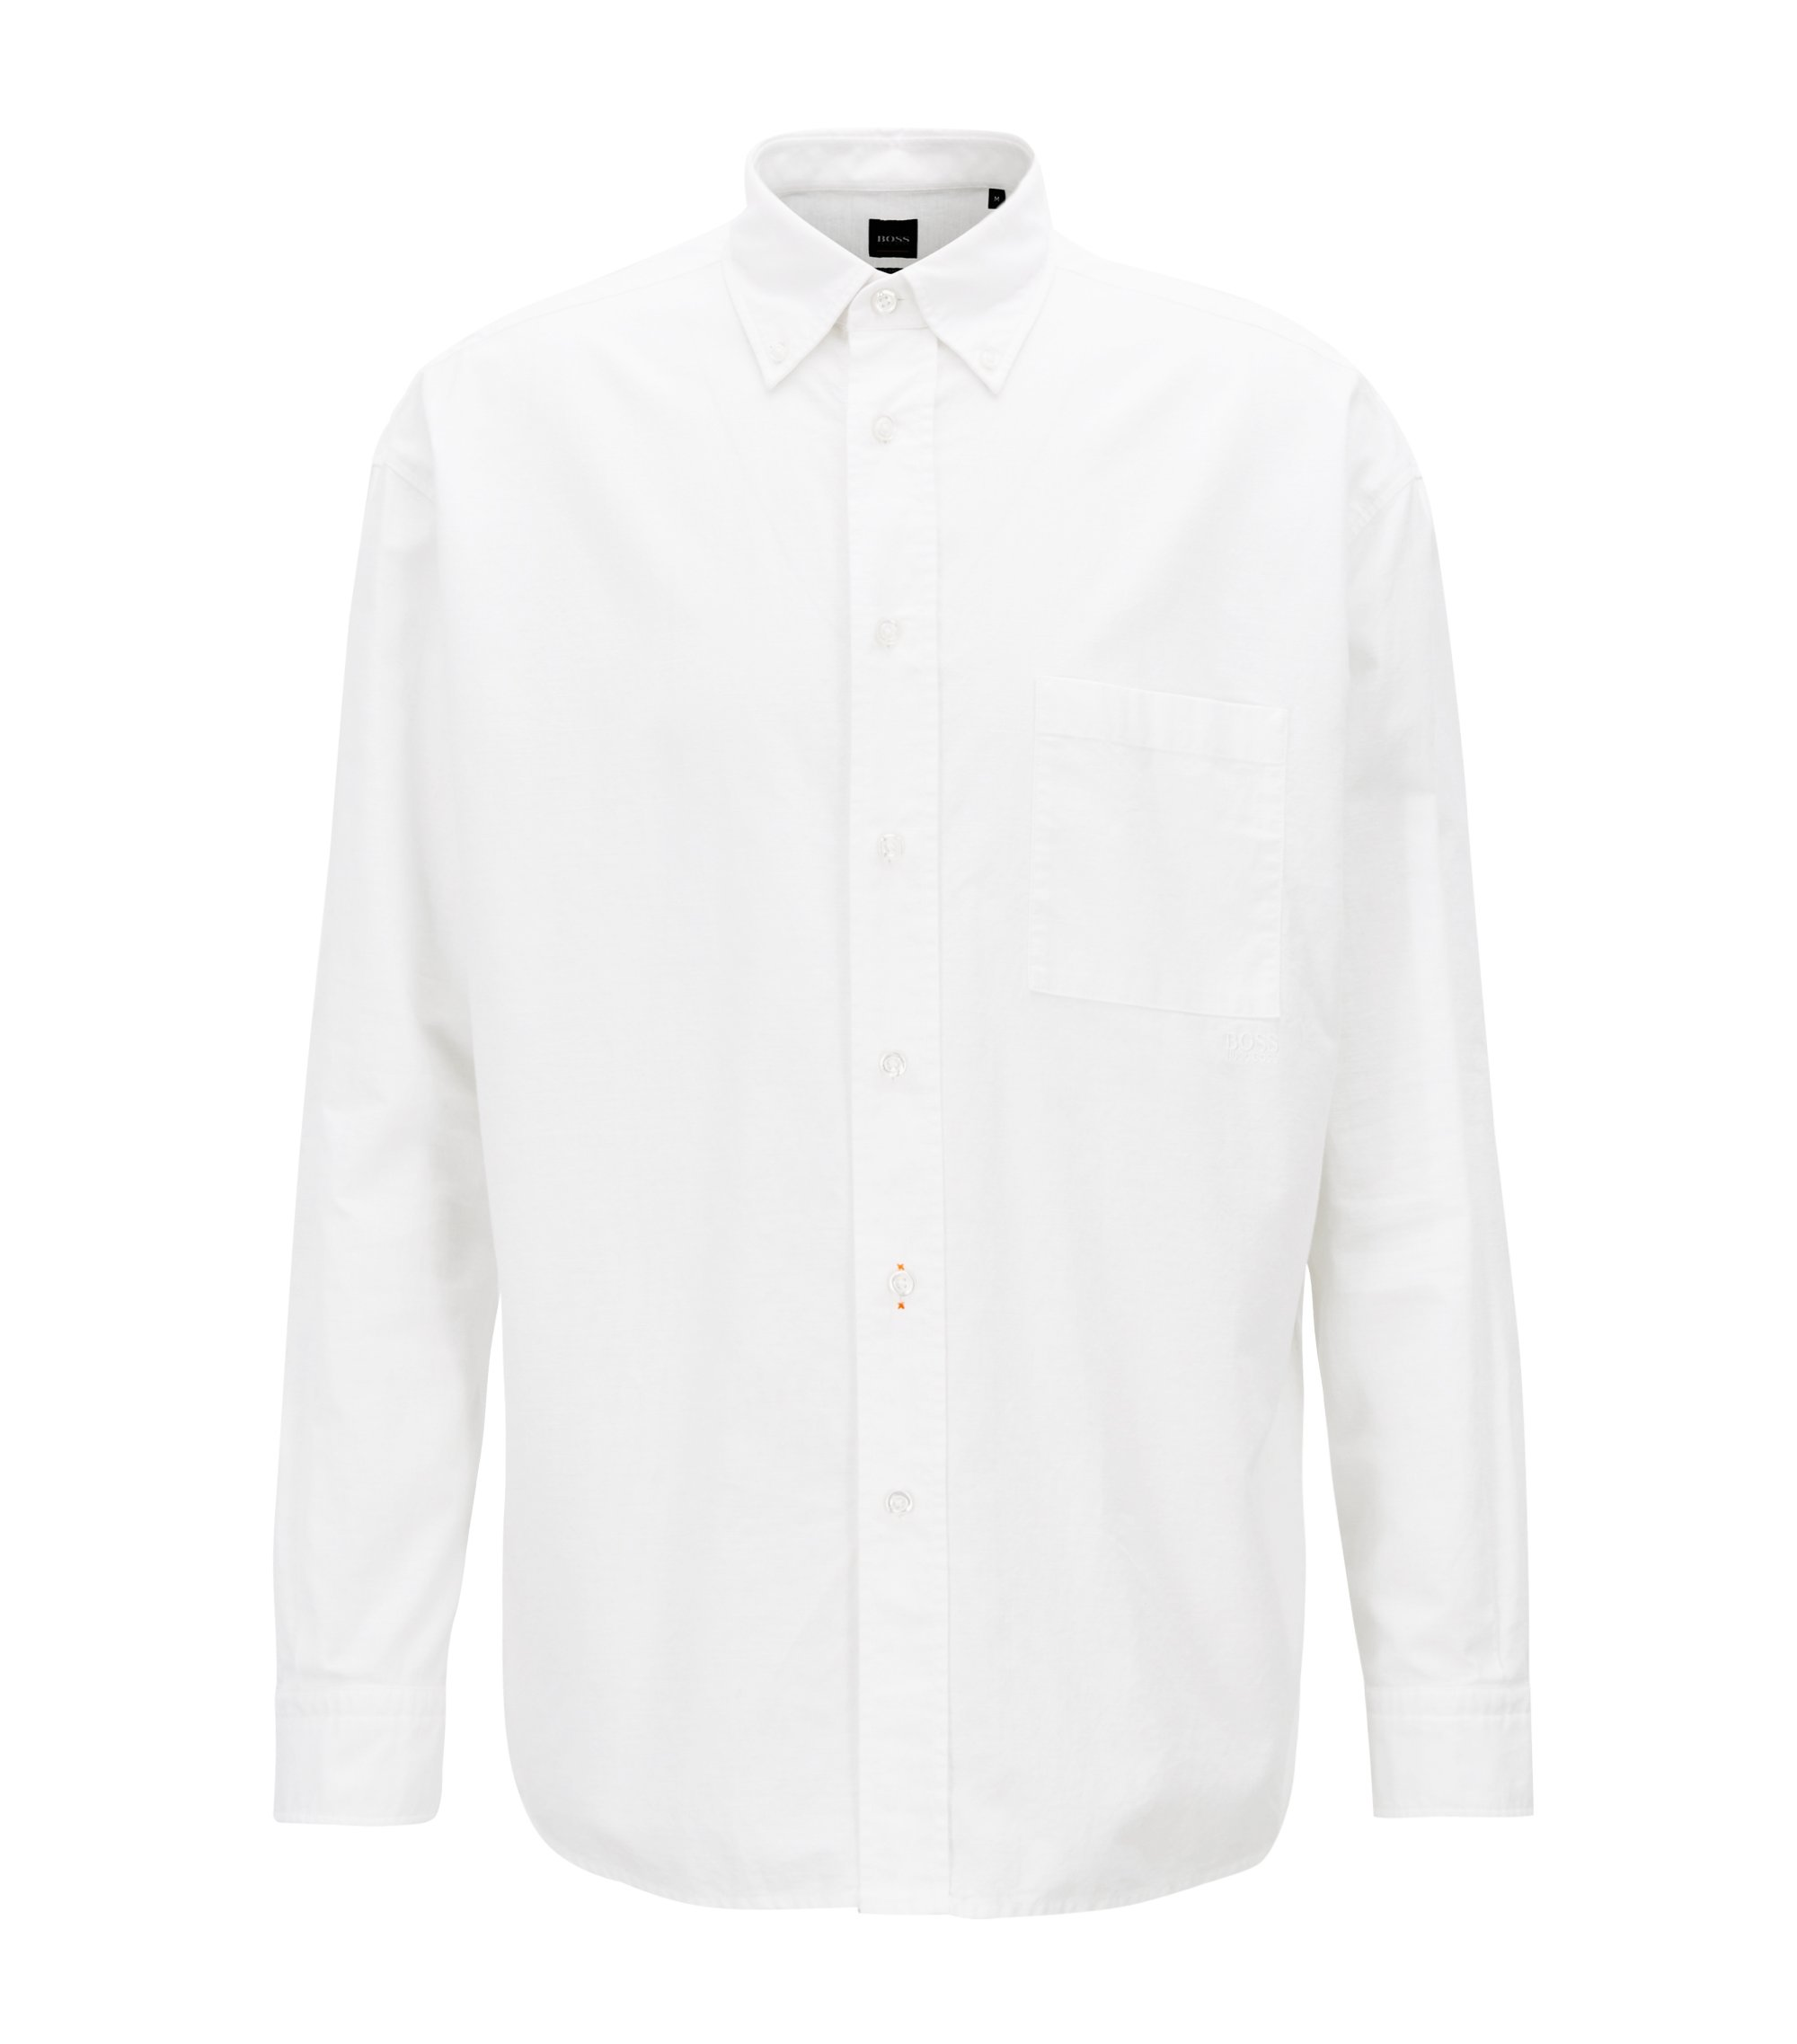 Relaxed-Fit Oxford-Hemd aus Baumwolle mit Button-Down-Kragen, Weiß